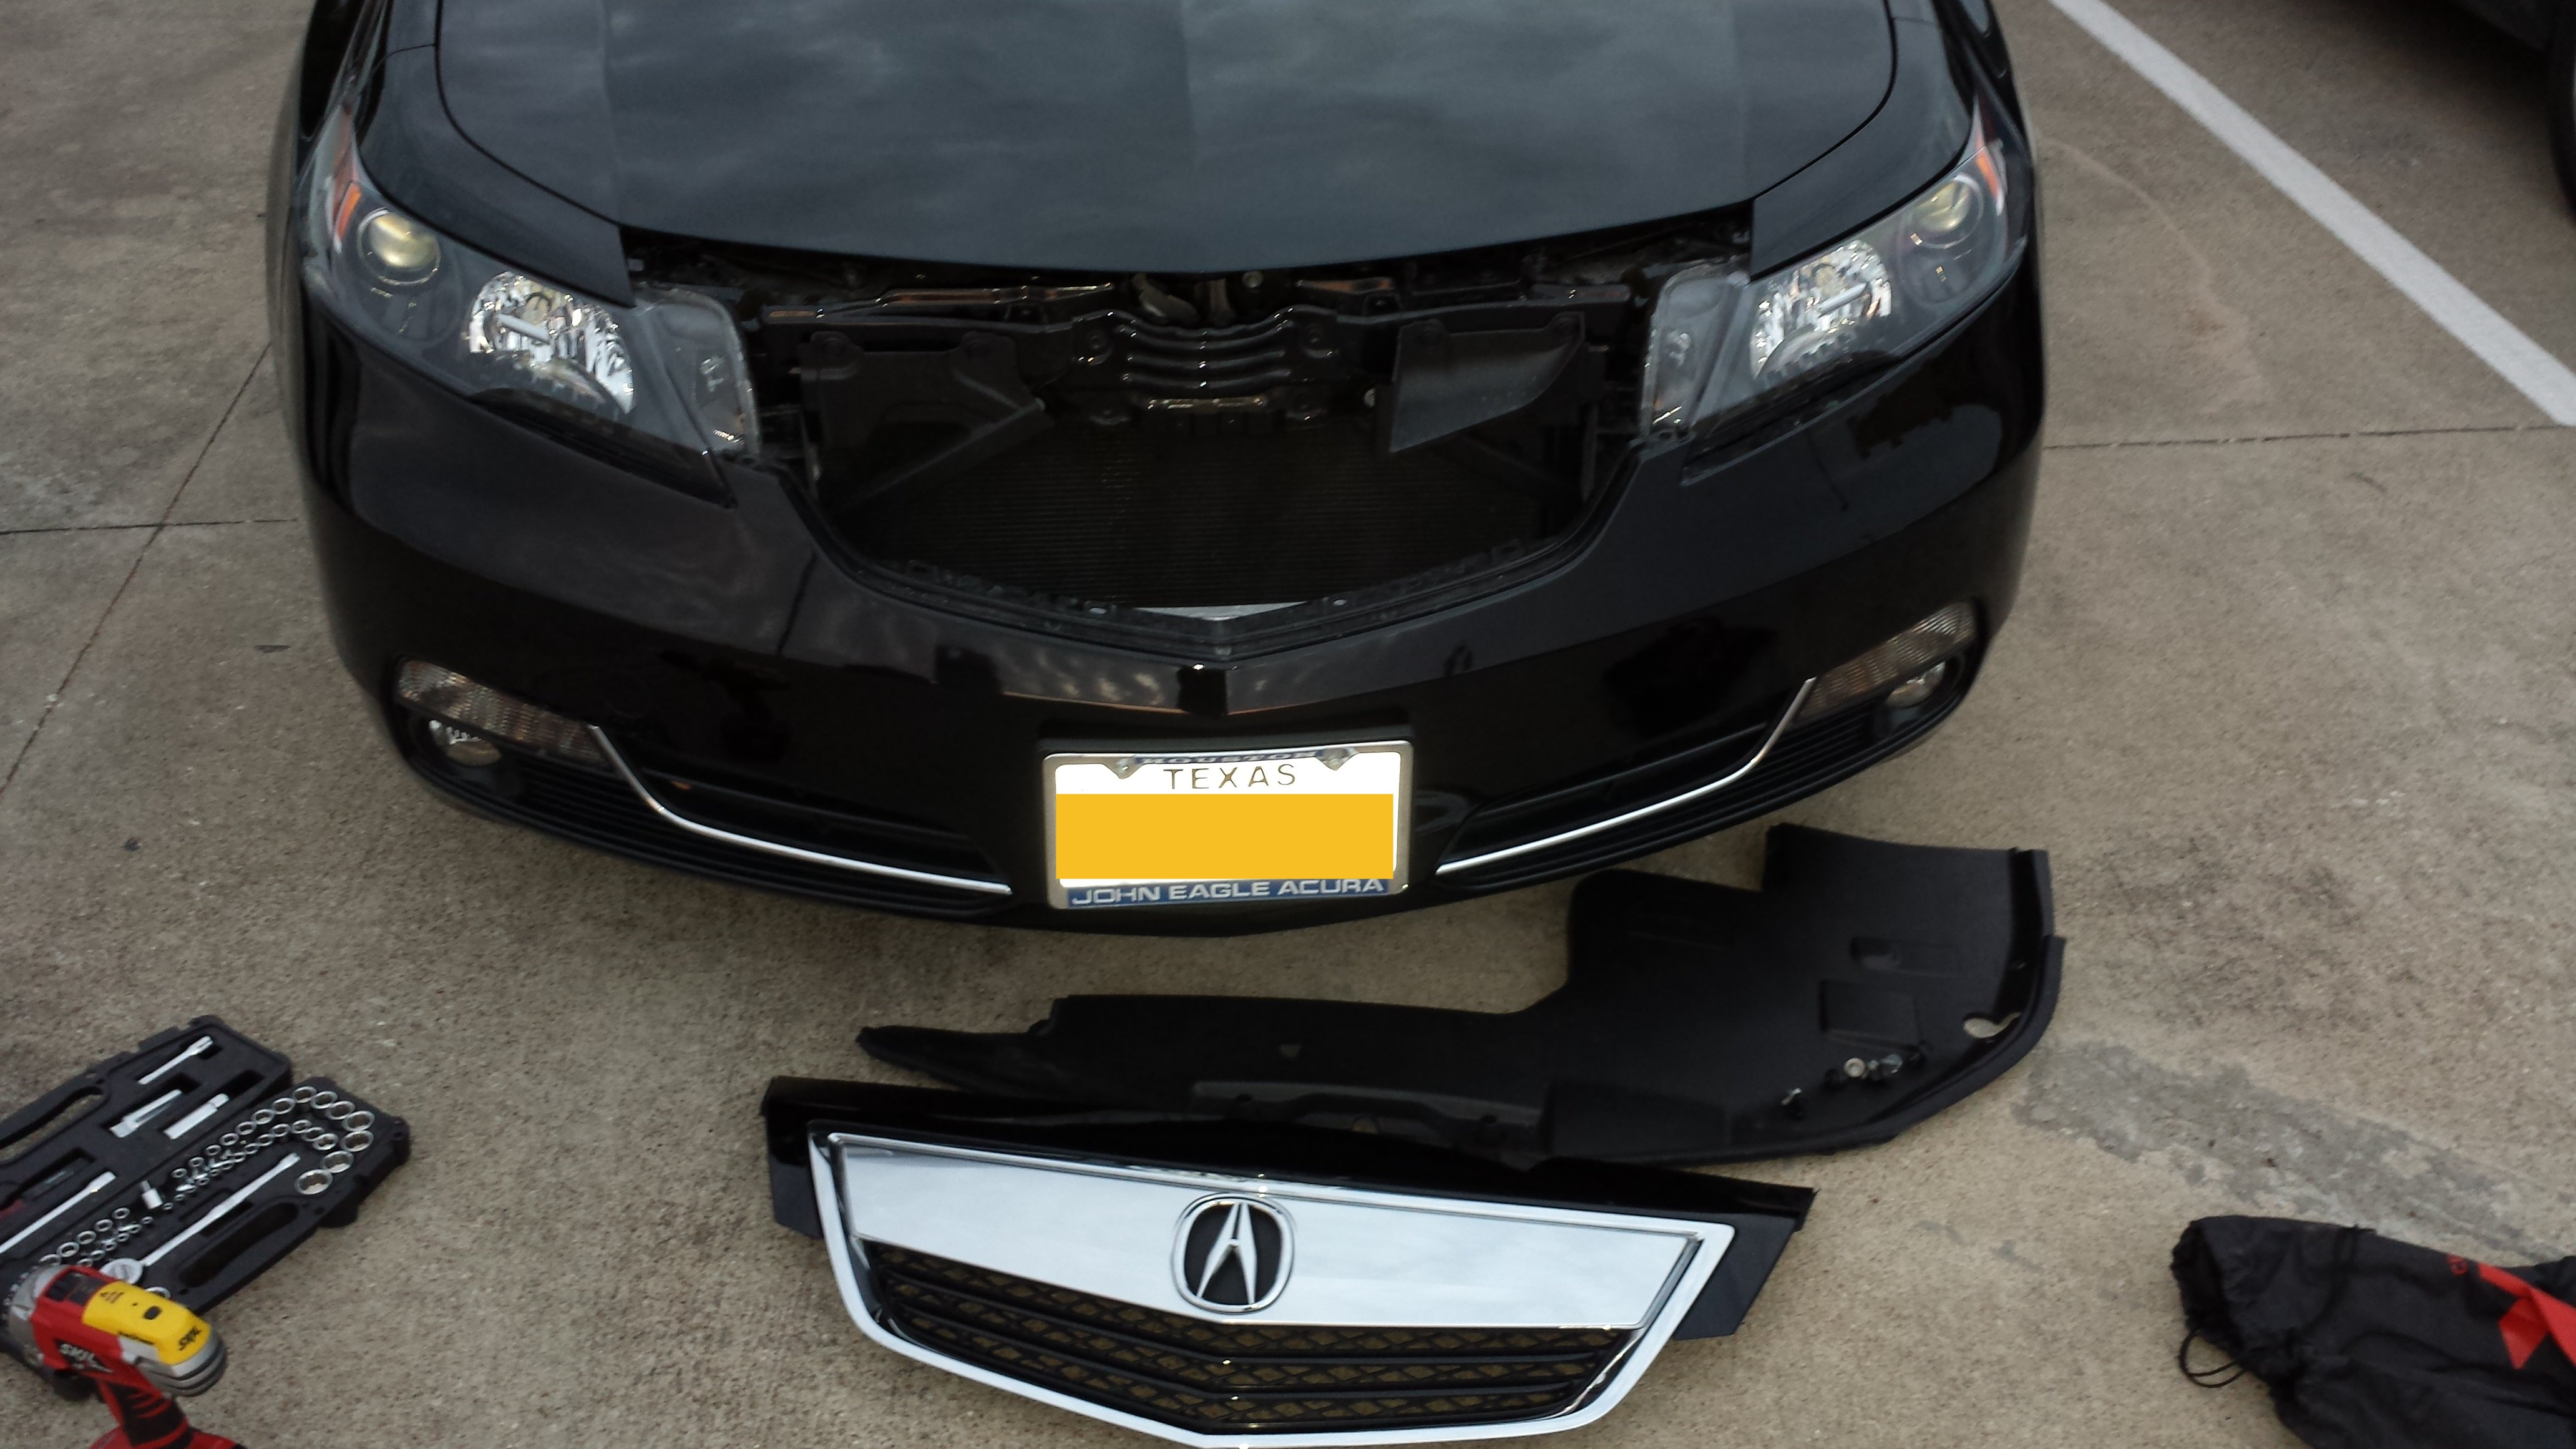 Acura TL SHAWD Grill Removal - 2018 acura tsx grill replacement